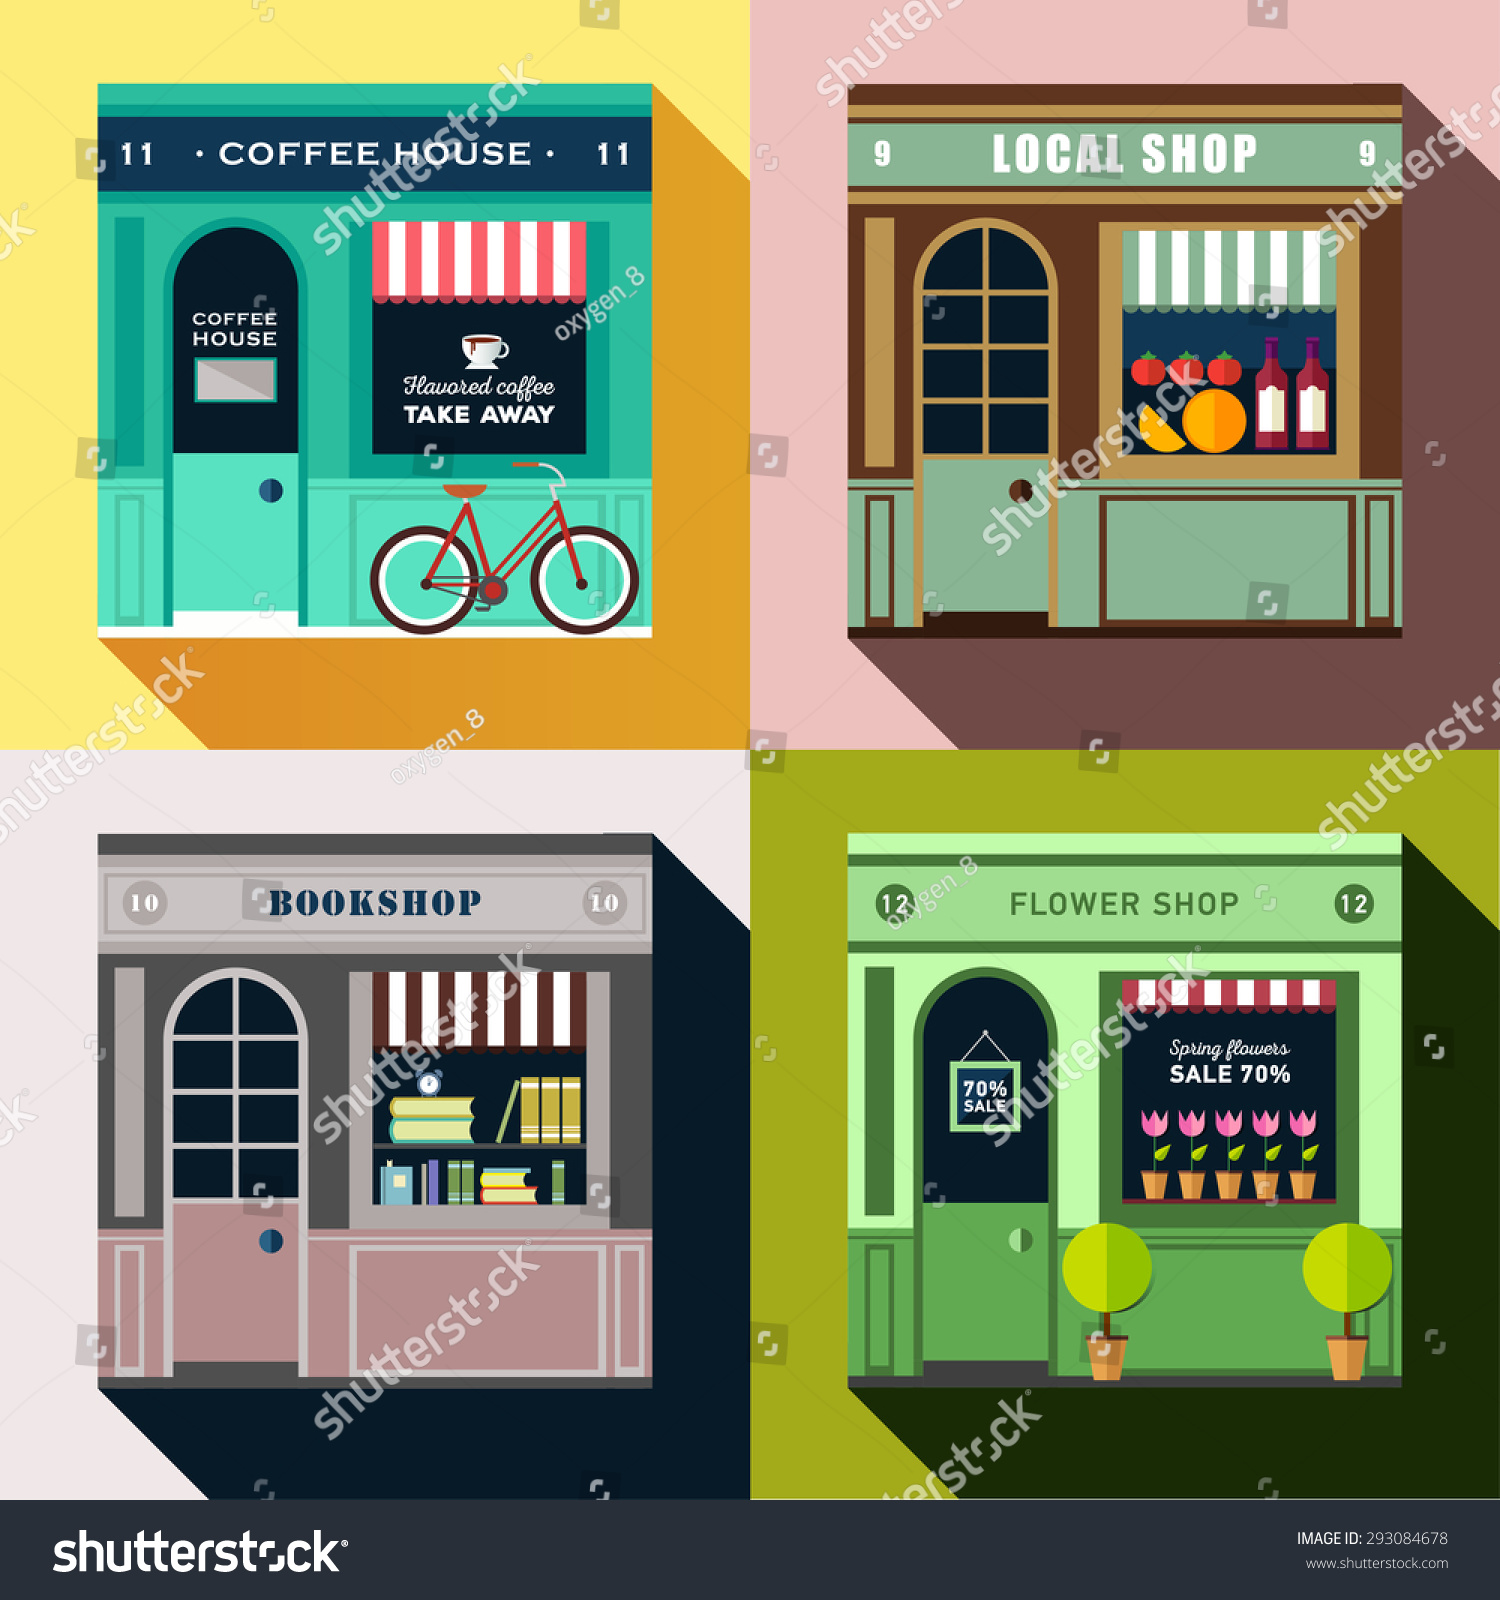 how to start a small store